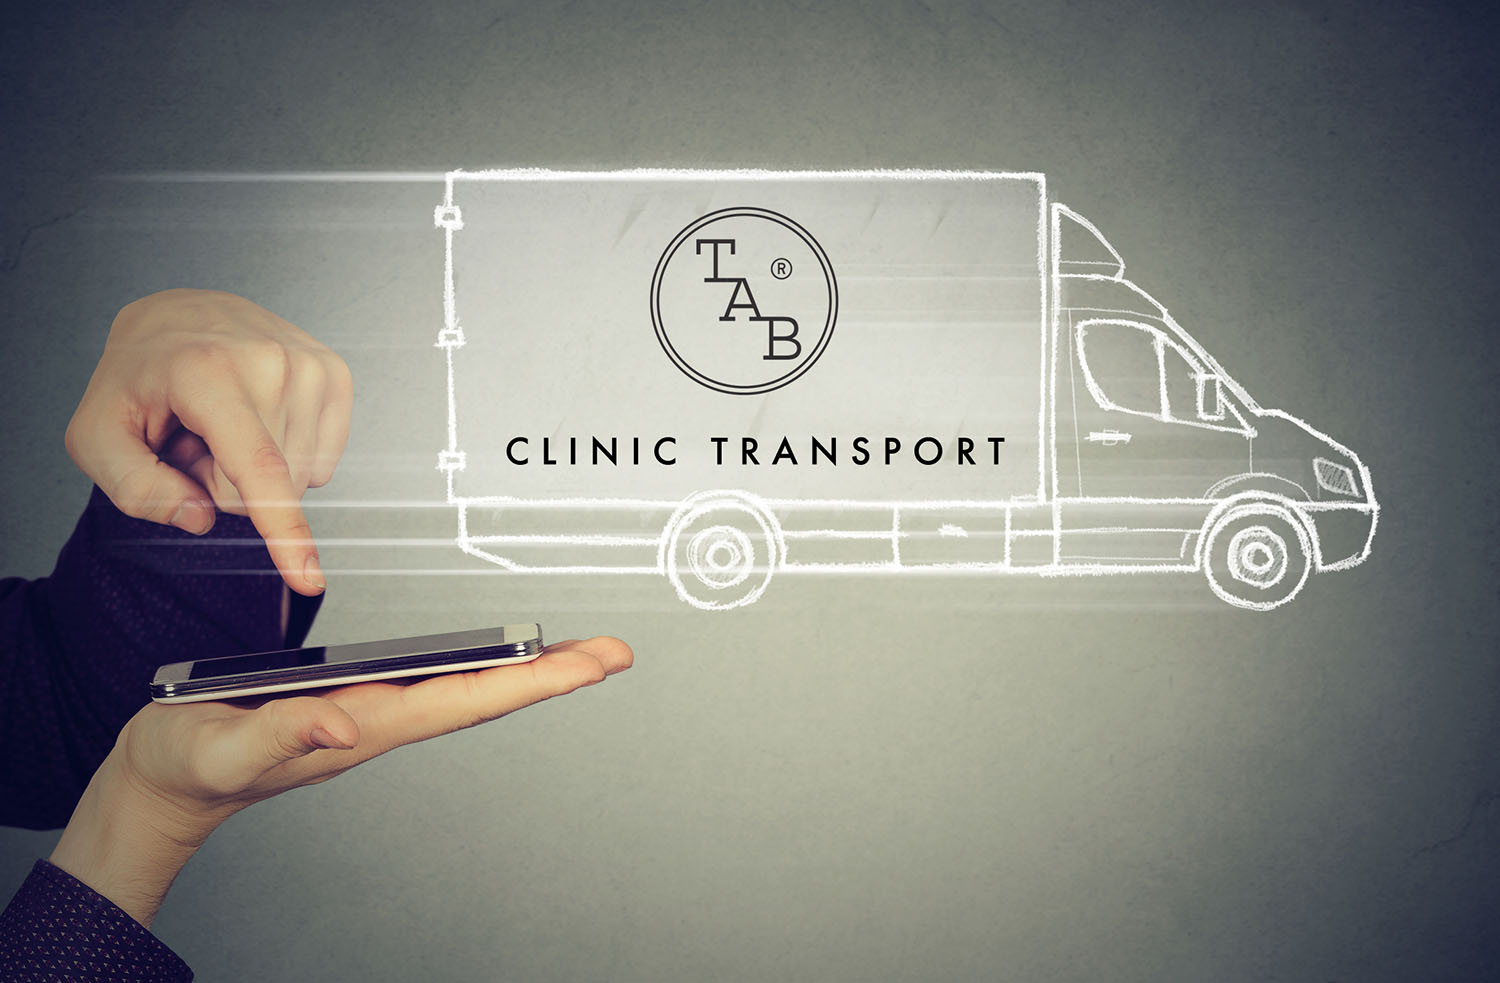 clinic_transport.jpg